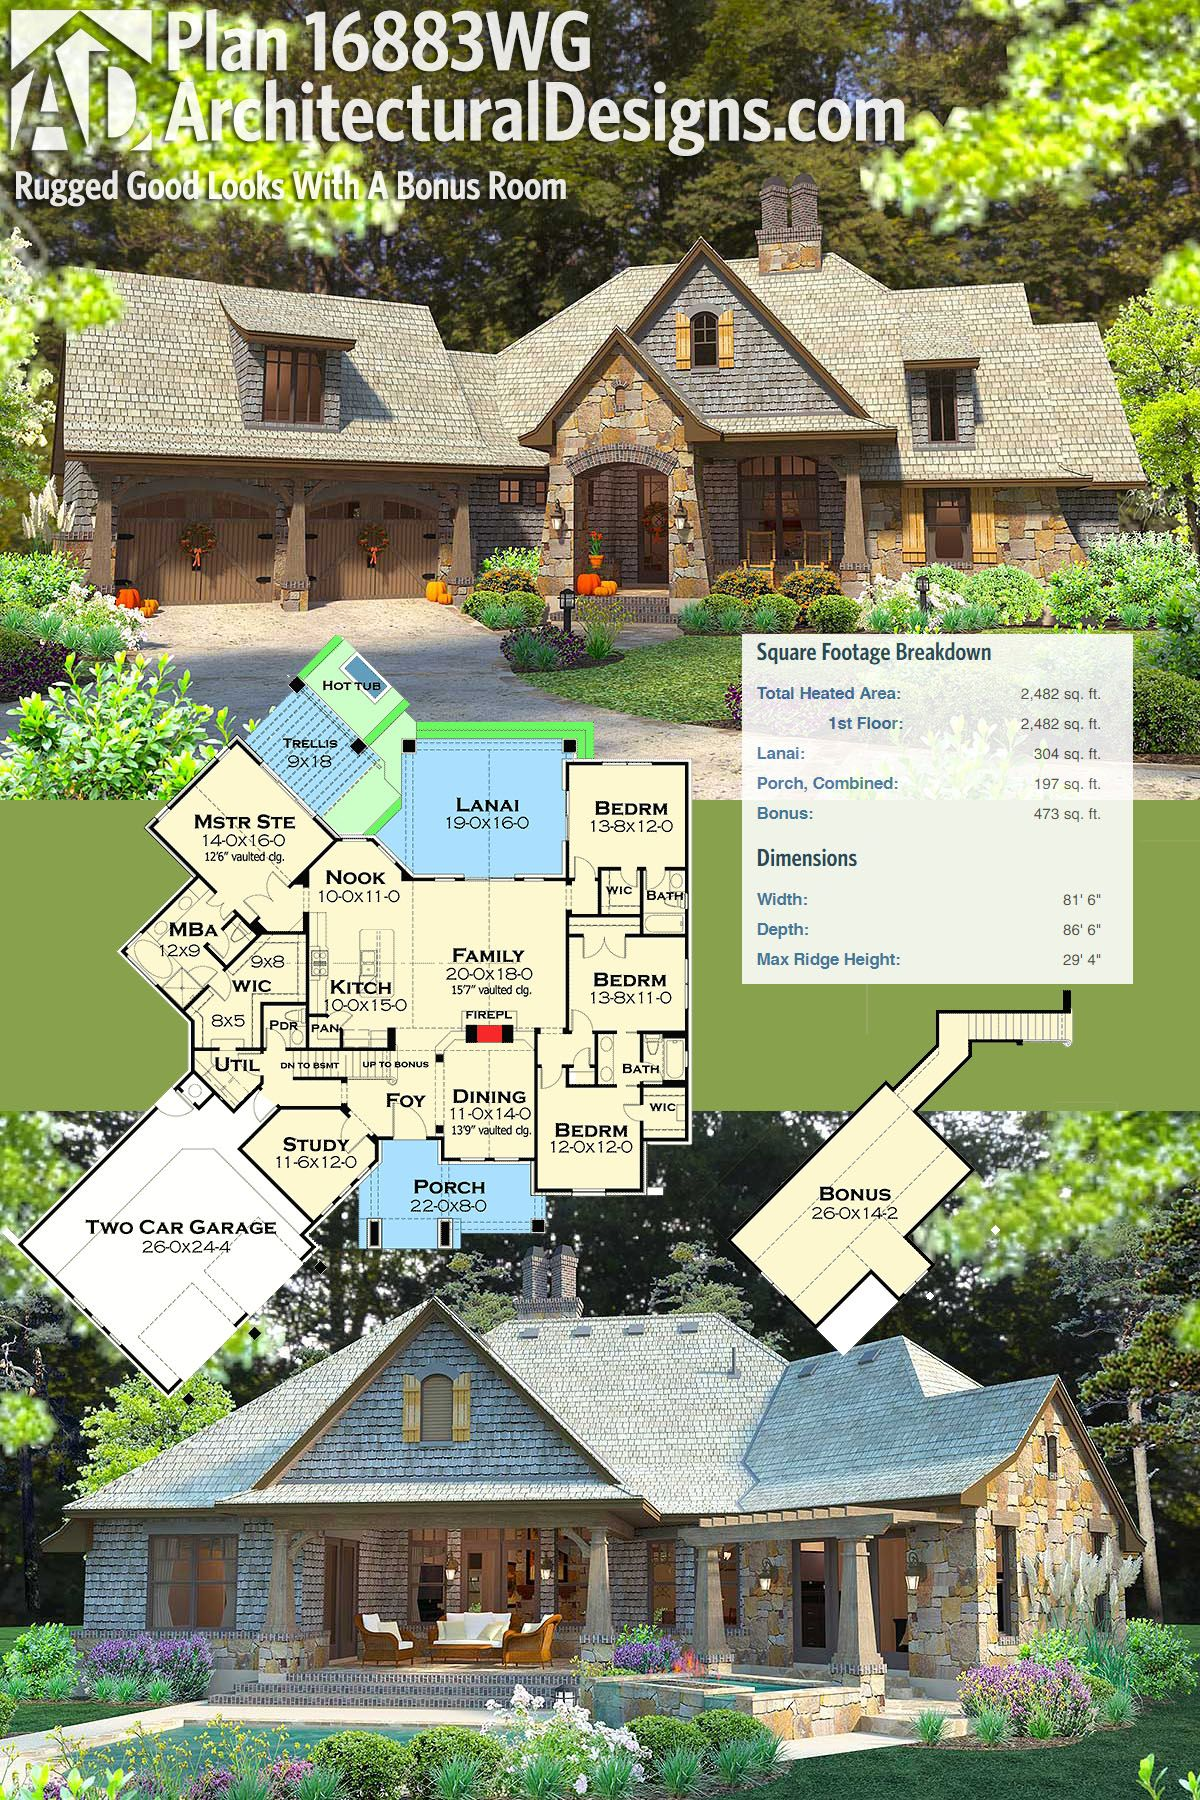 Plan 16883wg rugged good looks with a bonus room craftsman architectural designs rugged craftsman house plan 16883wg gives you 4 bedrooms in a split bedroom layout malvernweather Images